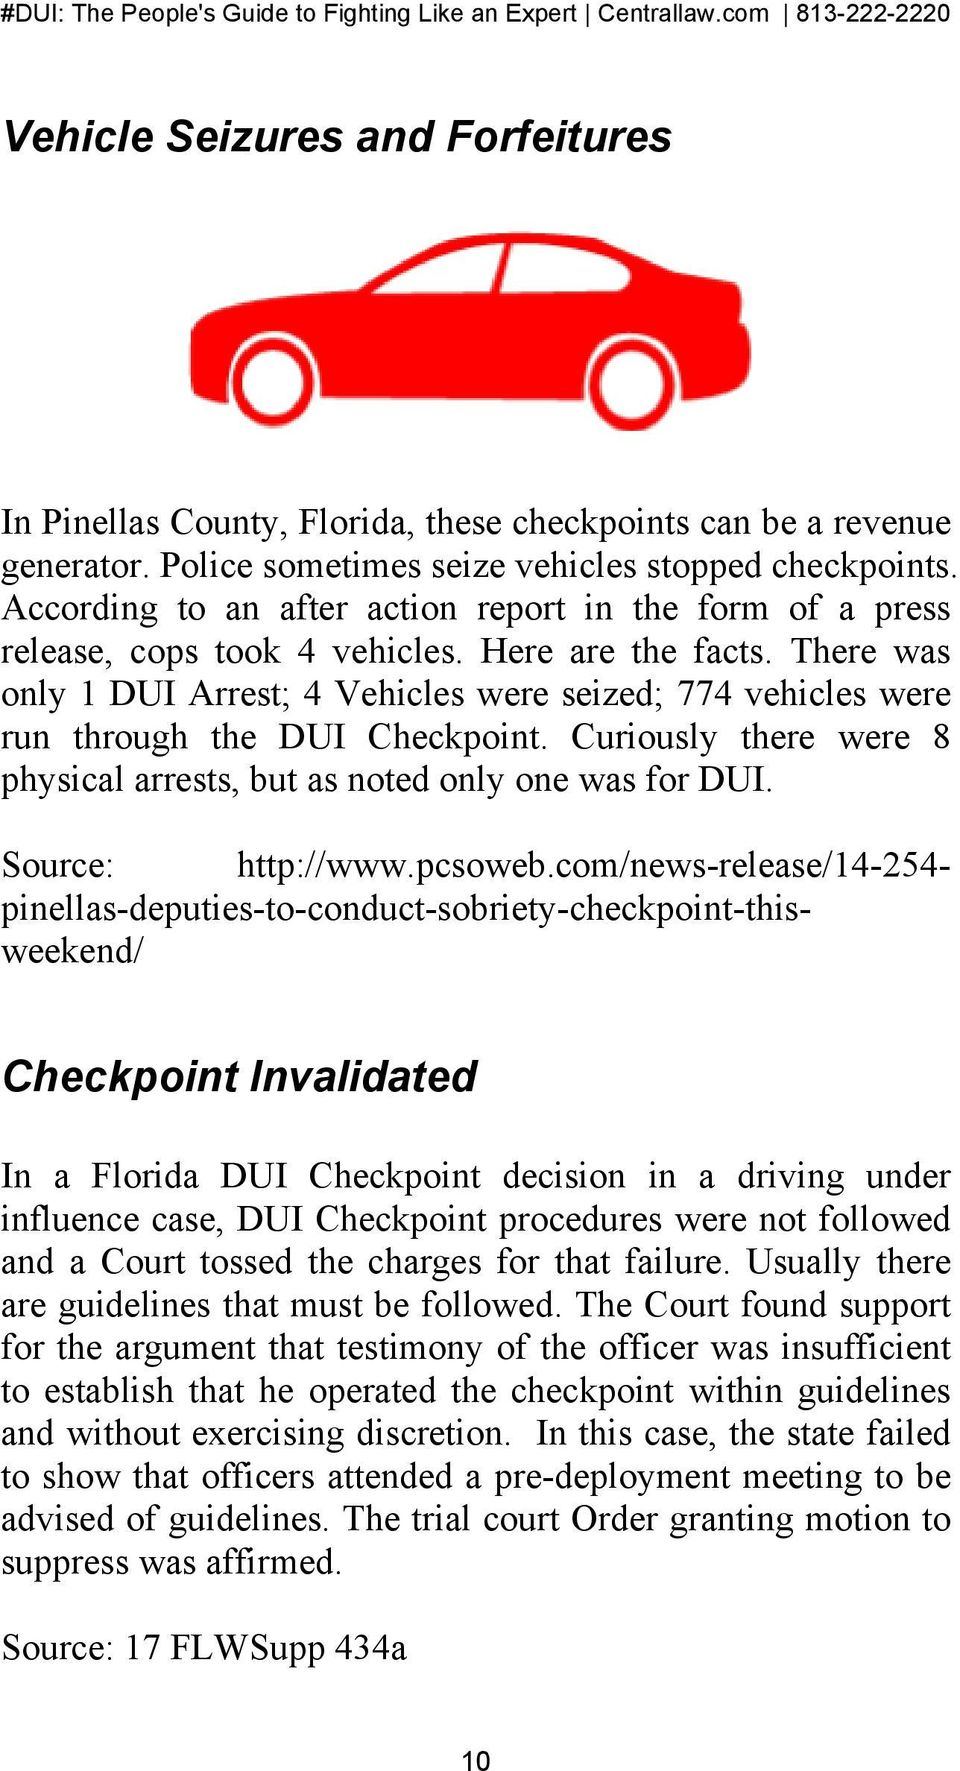 There was only 1 DUI Arrest; 4 Vehicles were seized; 774 vehicles were run through the DUI Checkpoint. Curiously there were 8 physical arrests, but as noted only one was for DUI. Source: http://www.